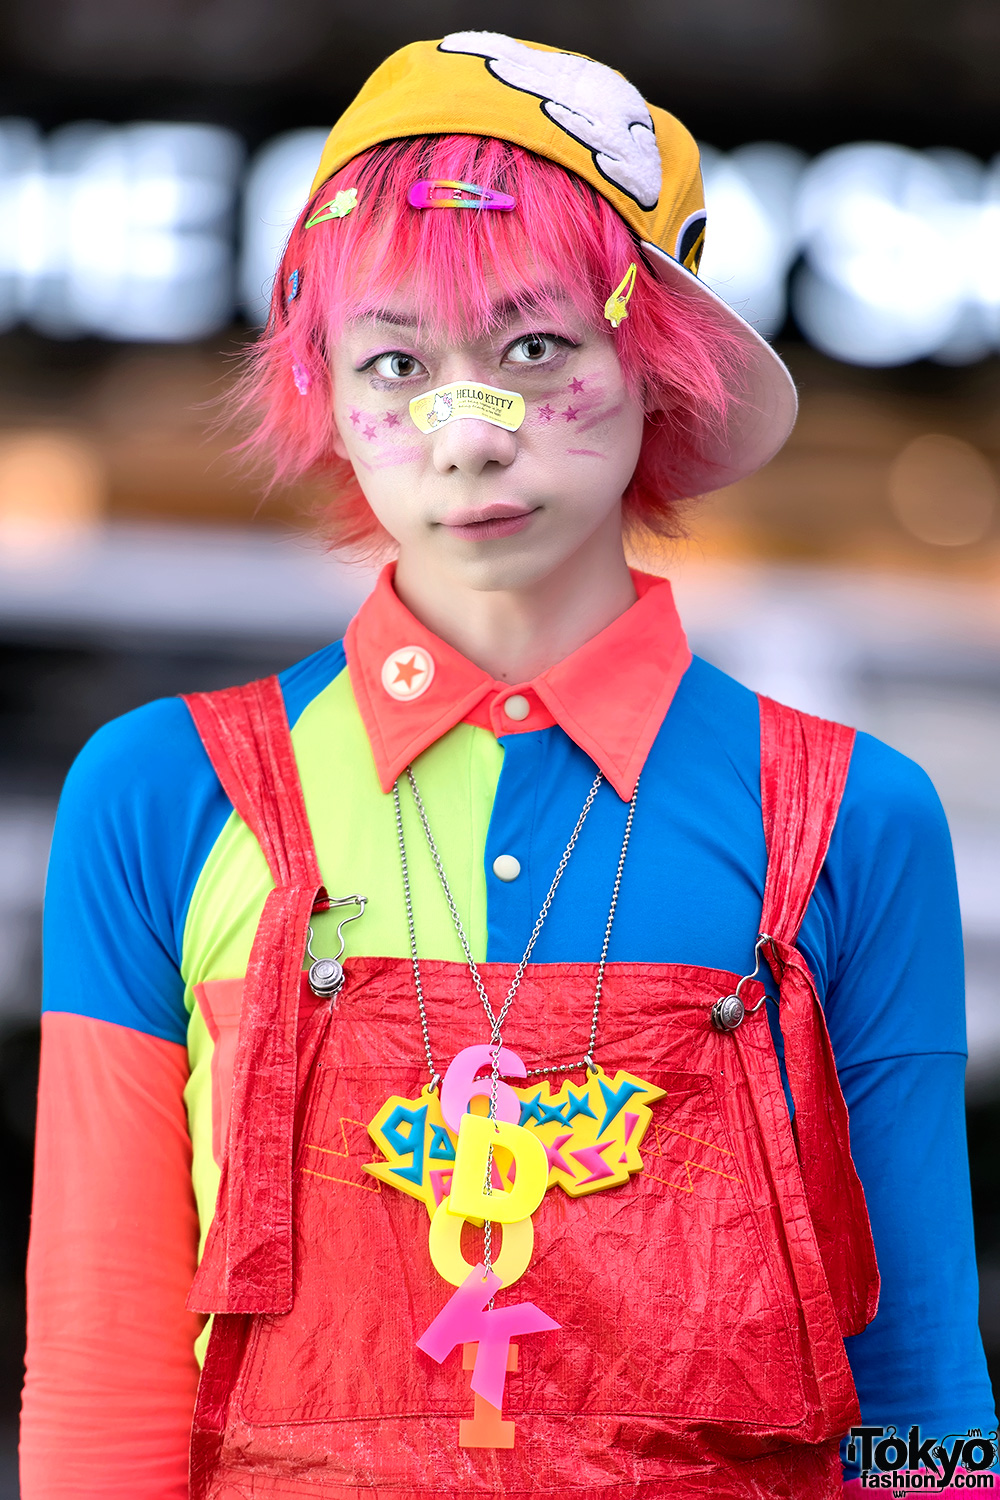 Harajuku Fashion Walk Organizer Junnyan Wearing W